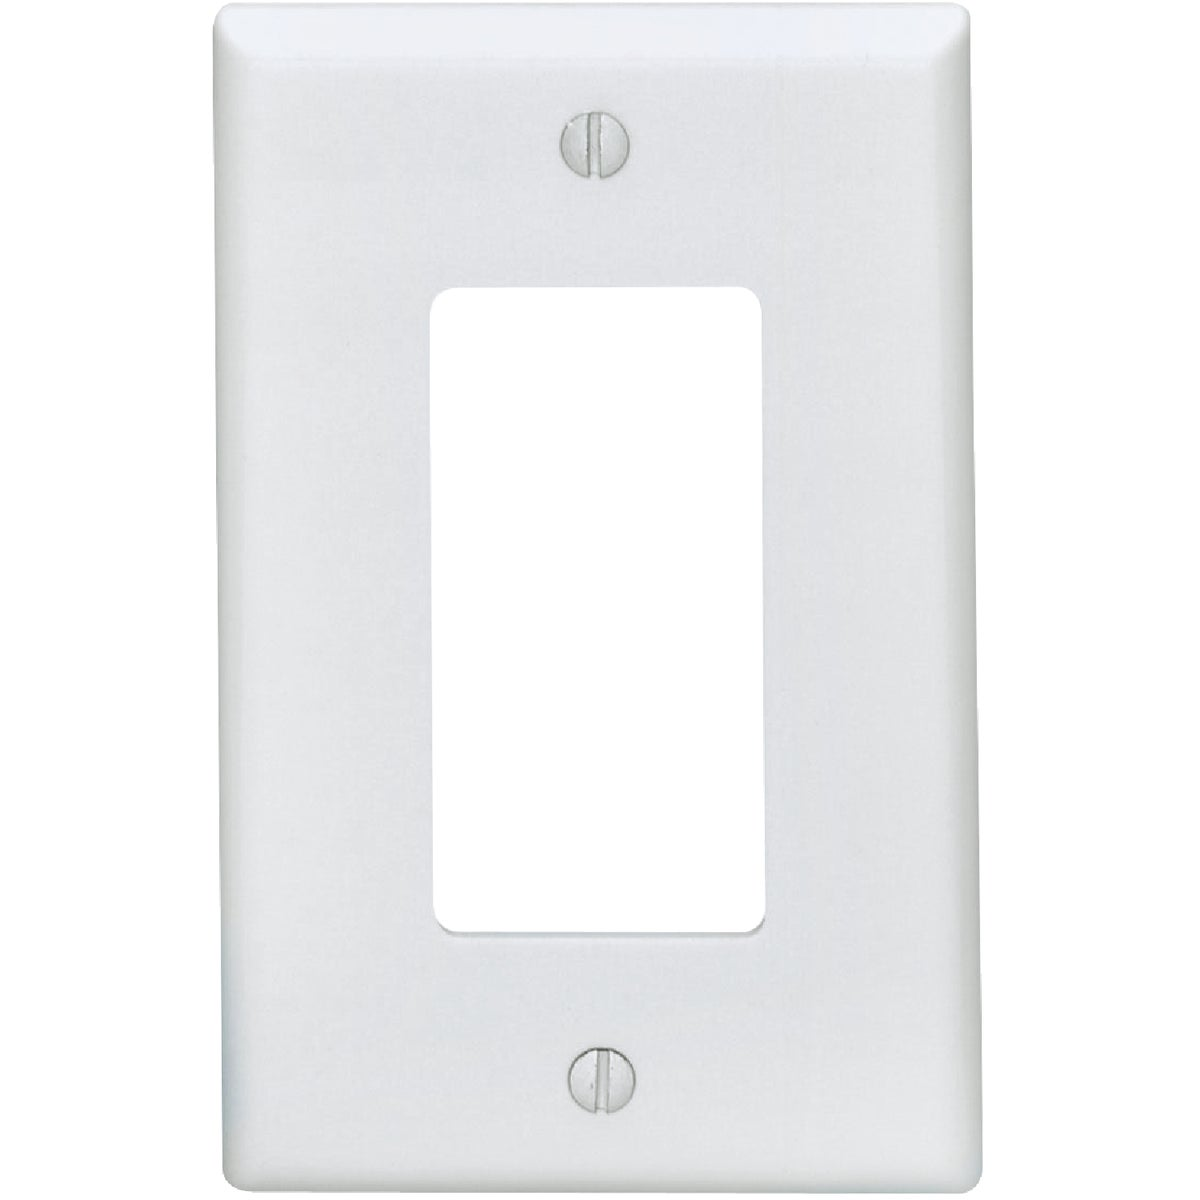 WHT WALL PLATE - 021-80601-W by Leviton Mfg Co